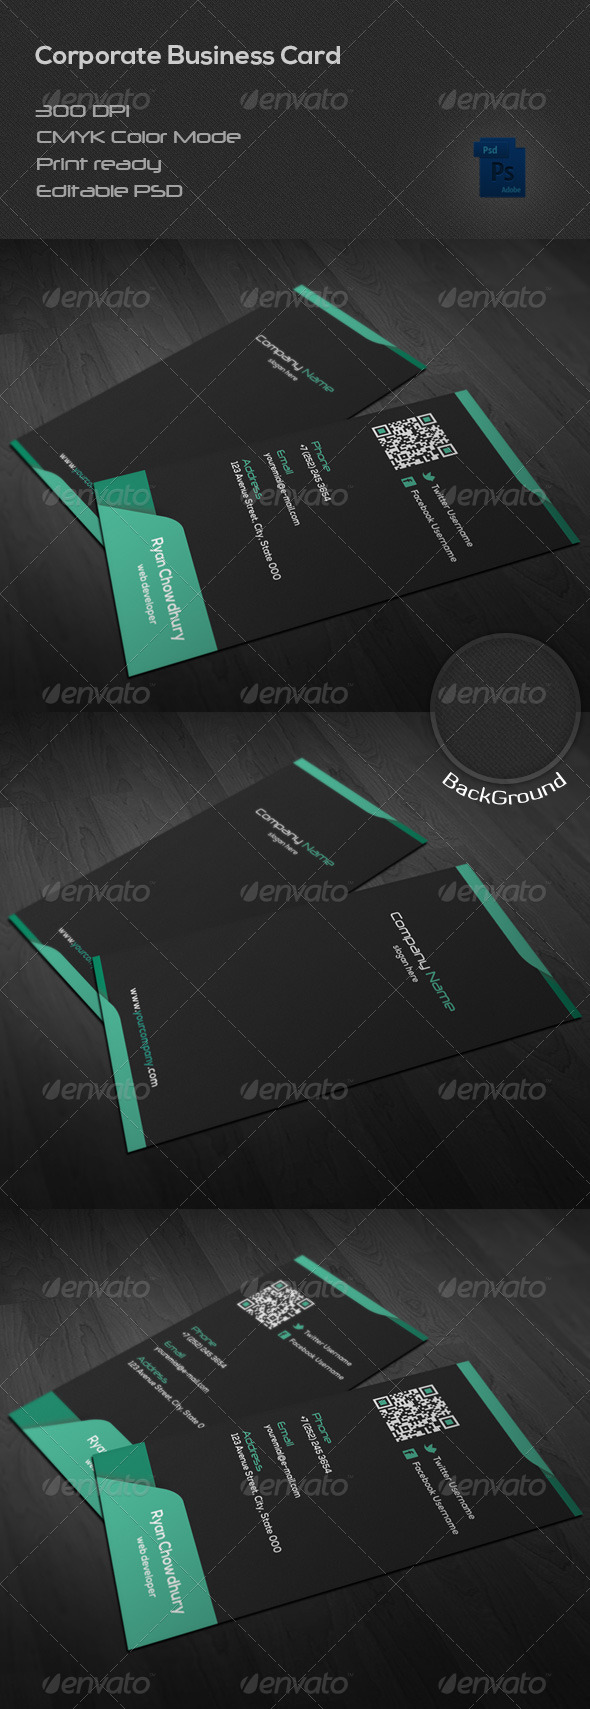 GraphicRiver Corporate Business Card 39 6940574